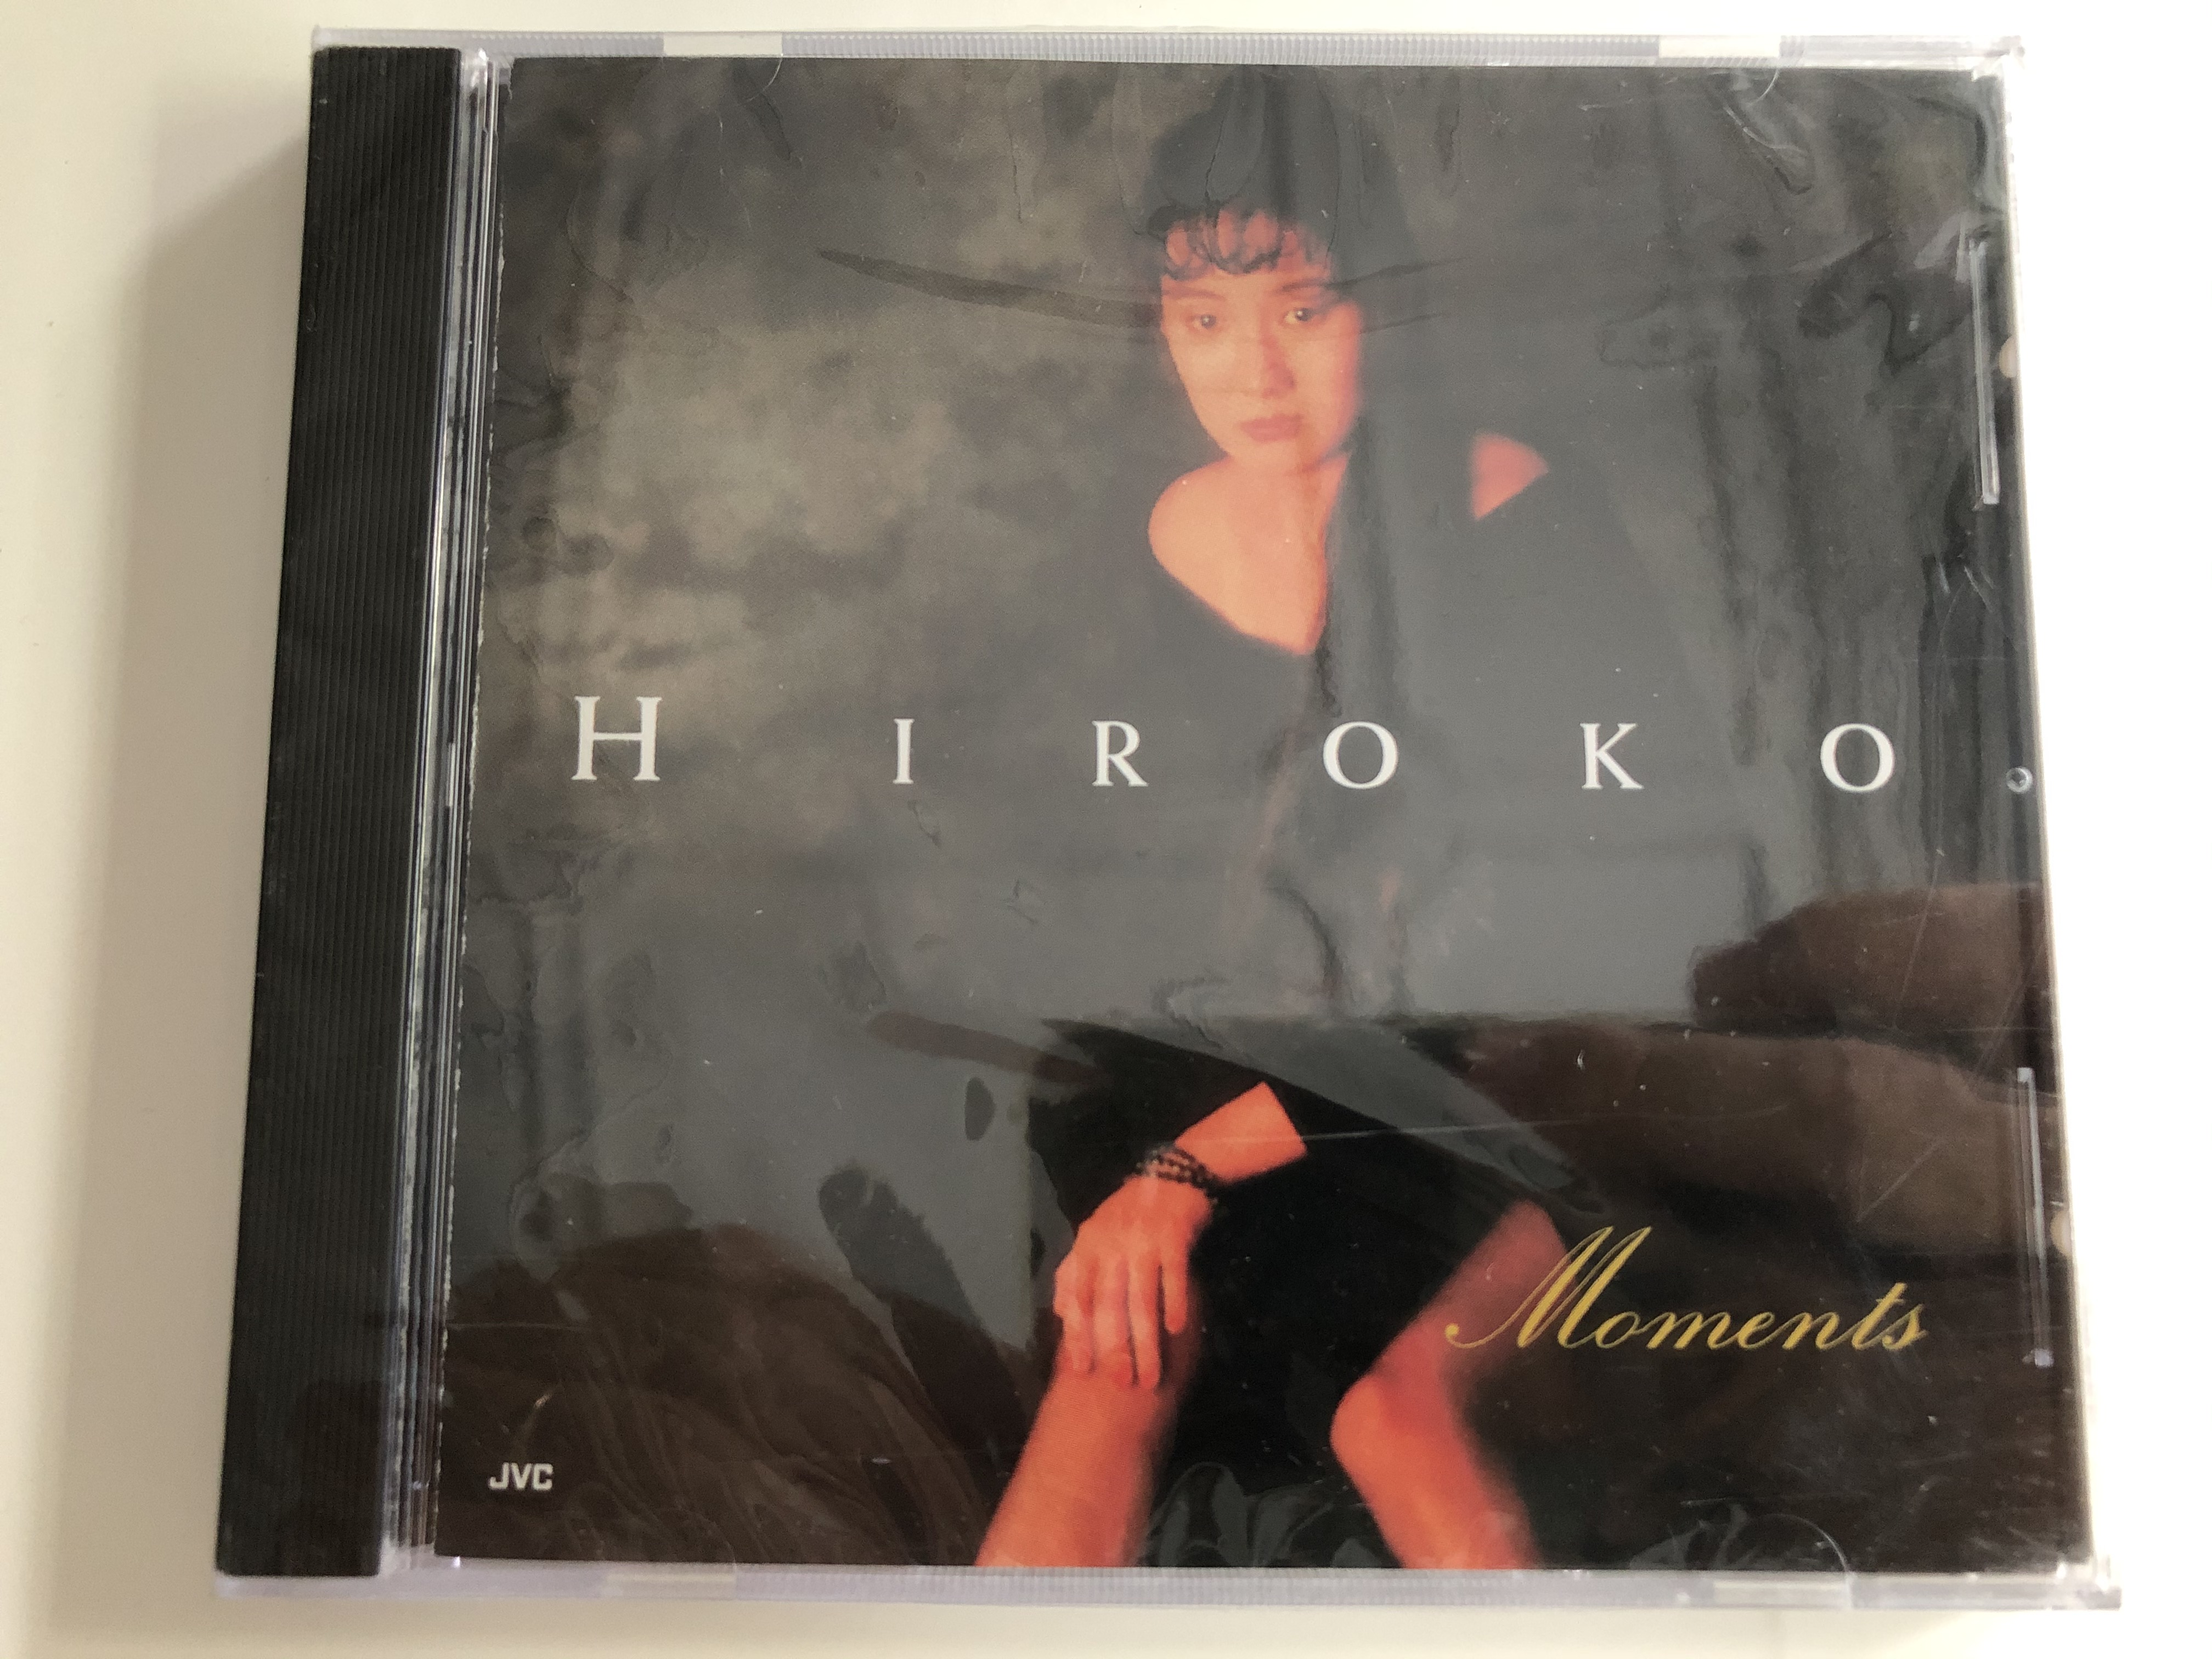 hiroko-moments-jvc-audio-cd-1996-jvc-2054-2-1-.jpg